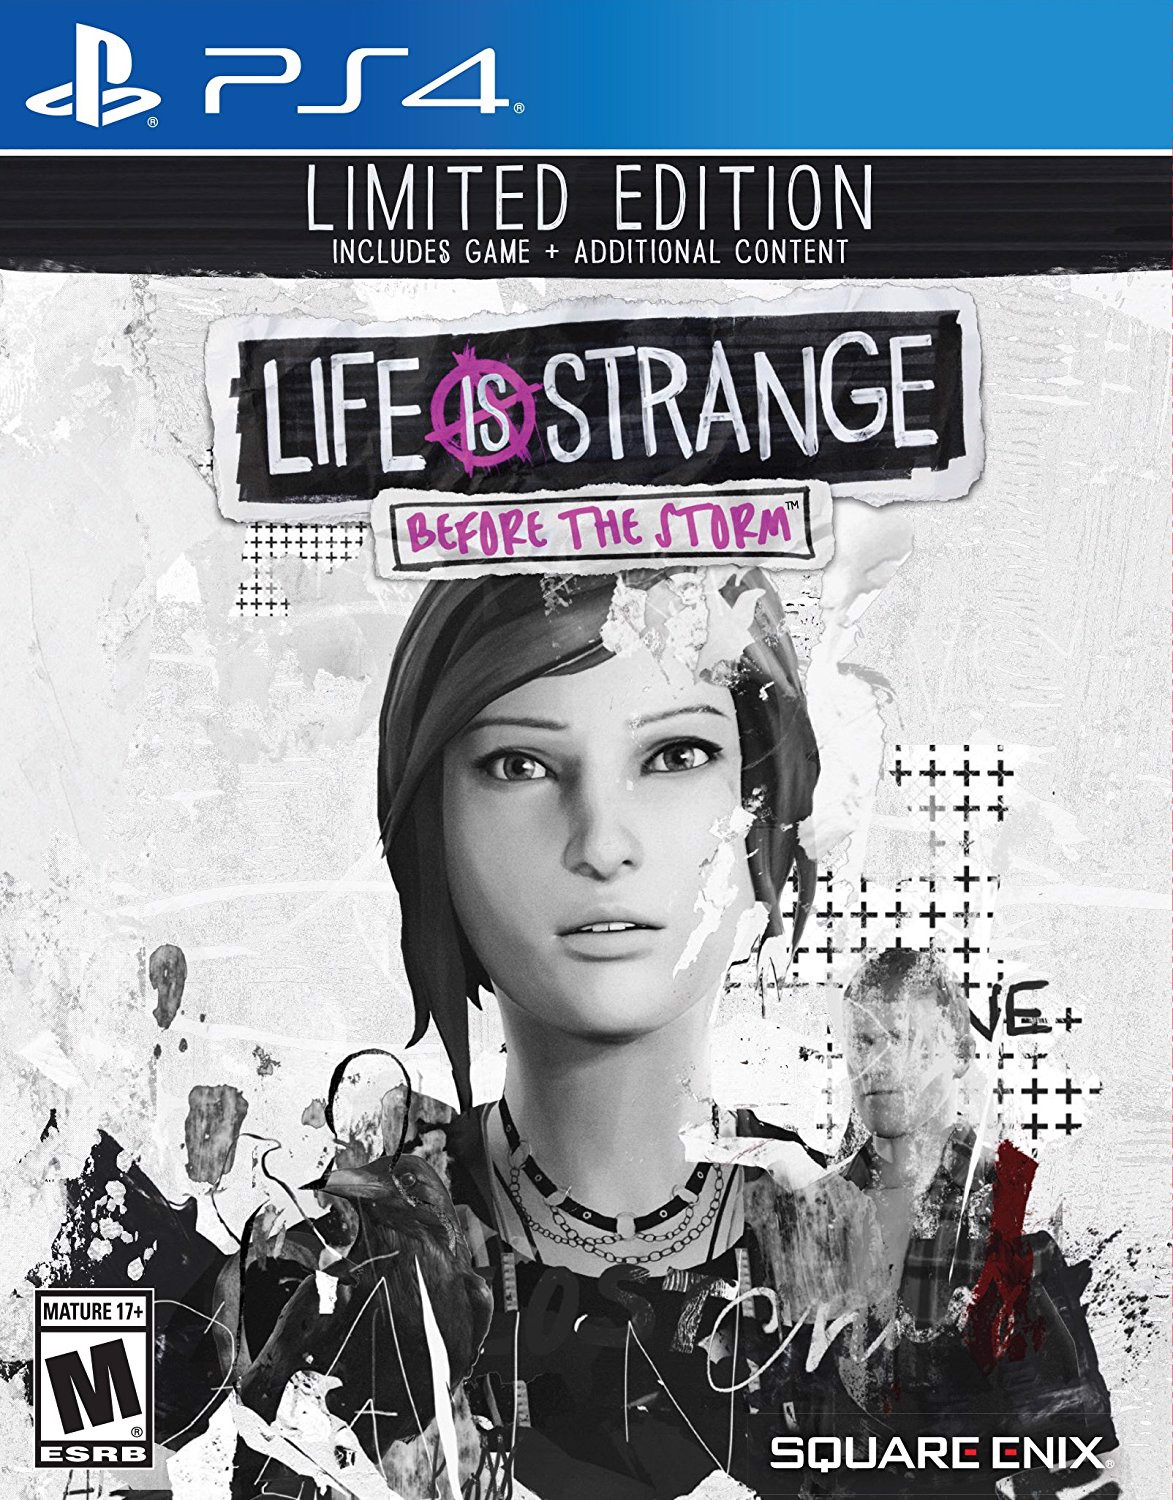 560 - Life is Strange: Before the Storm Limited Edition